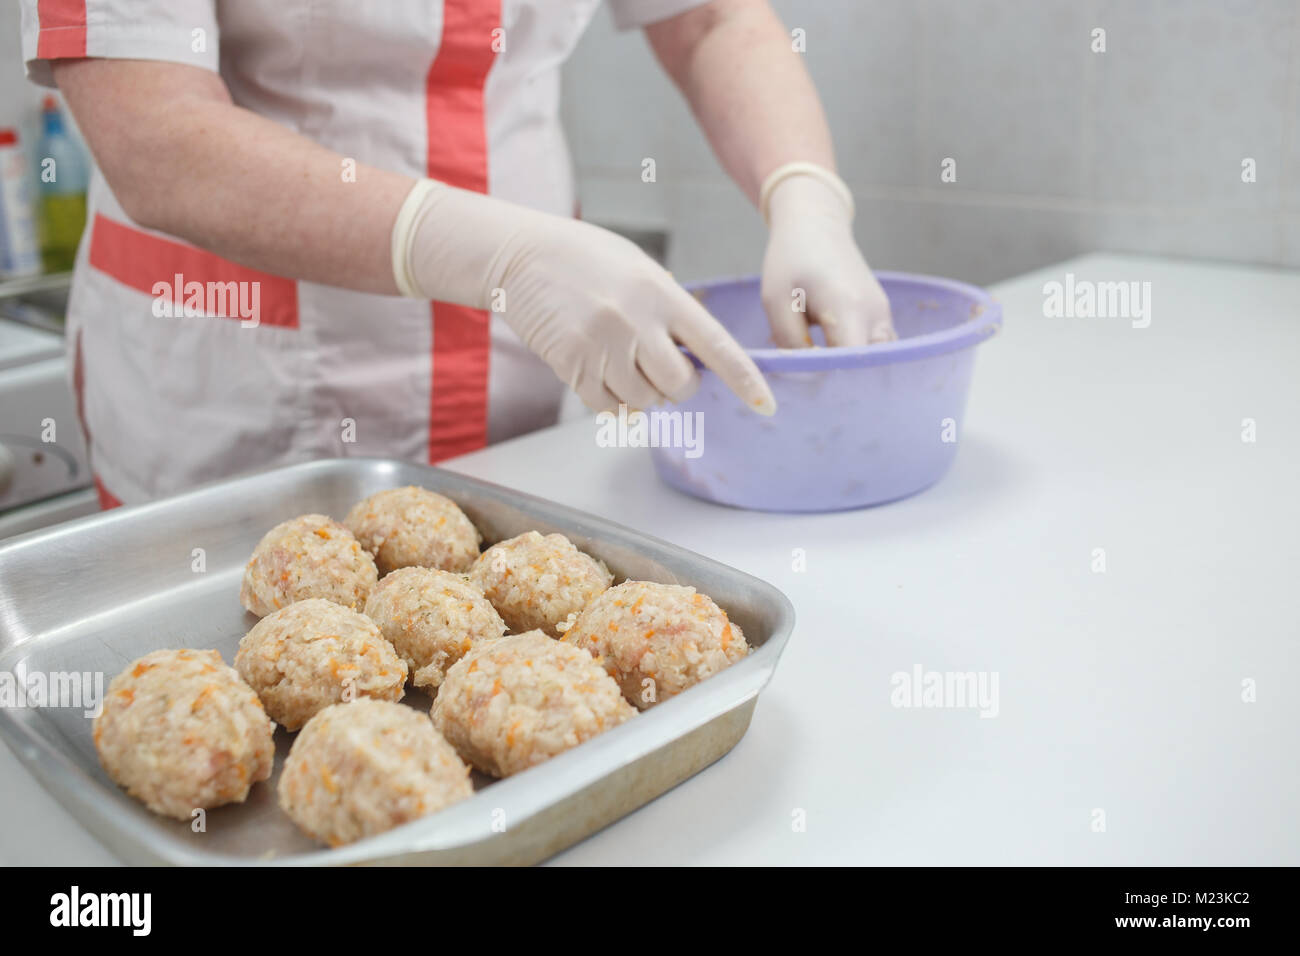 Women S Hands Make Meatballs Or Lazy Cabbage Rolls Raw Minced Meat